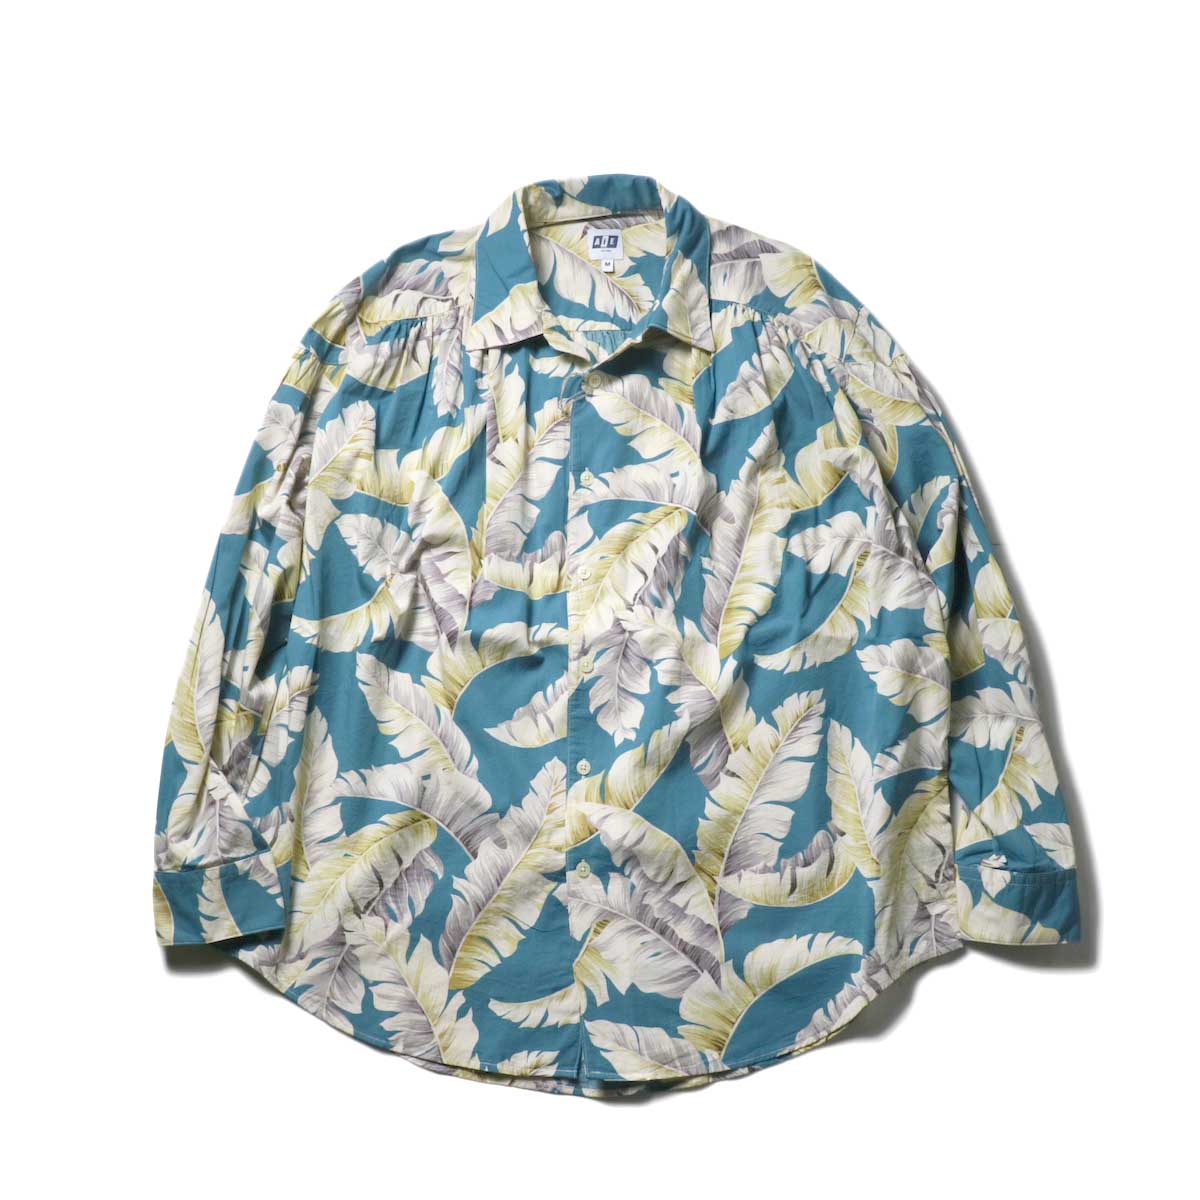 AiE / Painter Shirt - Hawaiian Print (Turquoise)正面